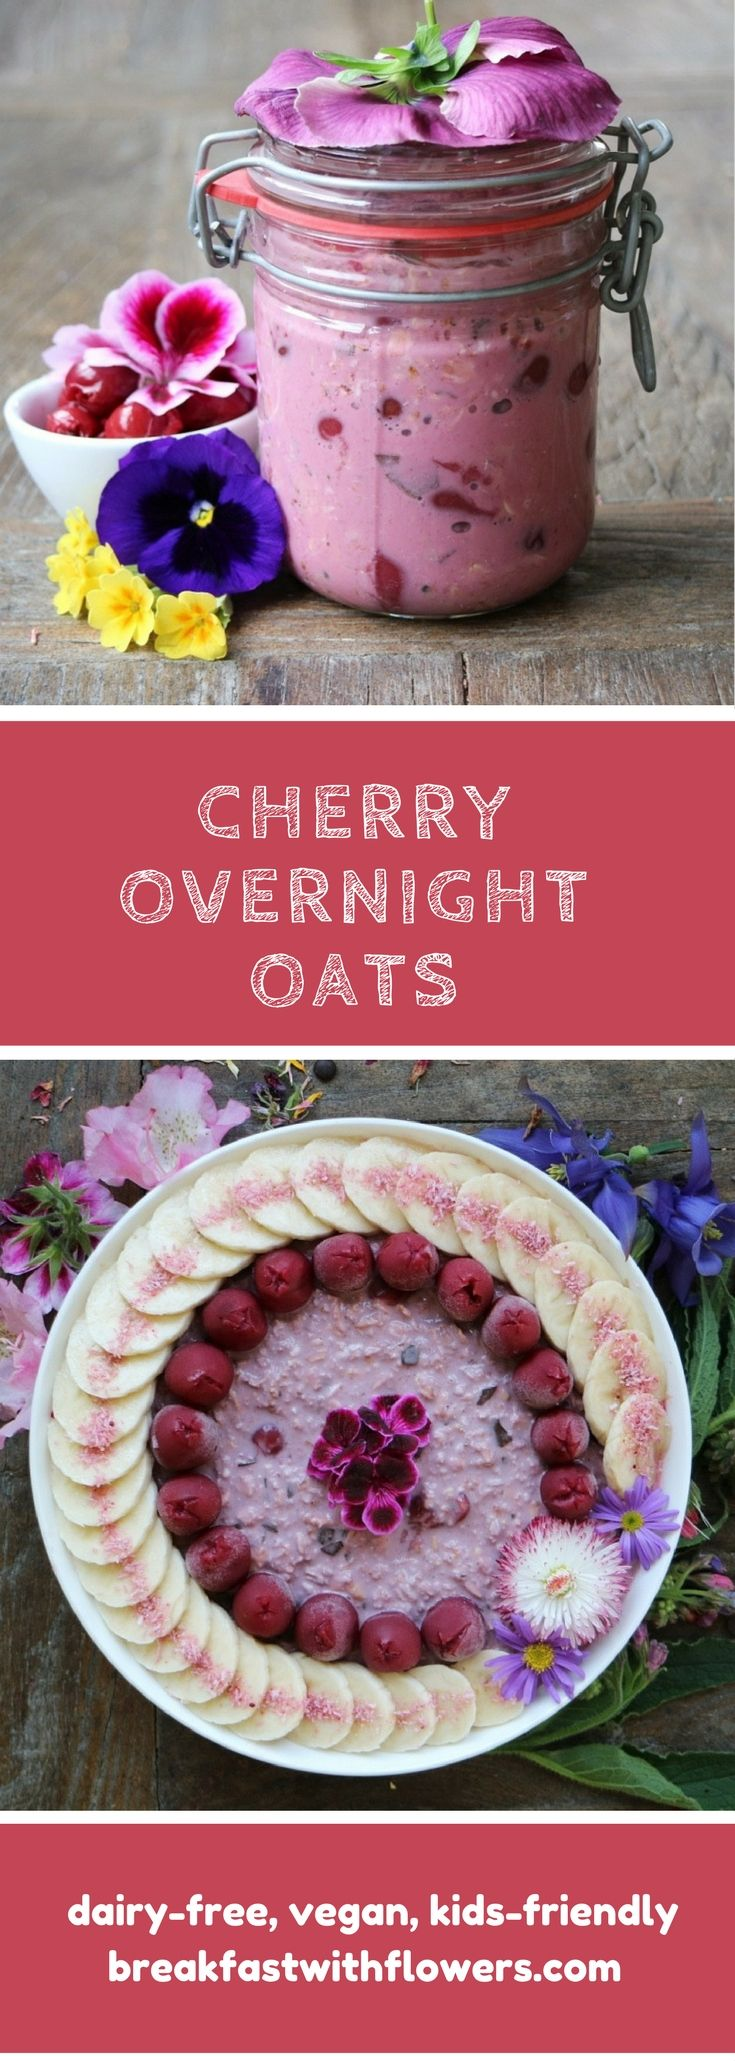 Cherry Overnight Oats with a sprinkle of dark chocolate. Vegan, kids-friendly. More recipes on breakfastwithflowers.com